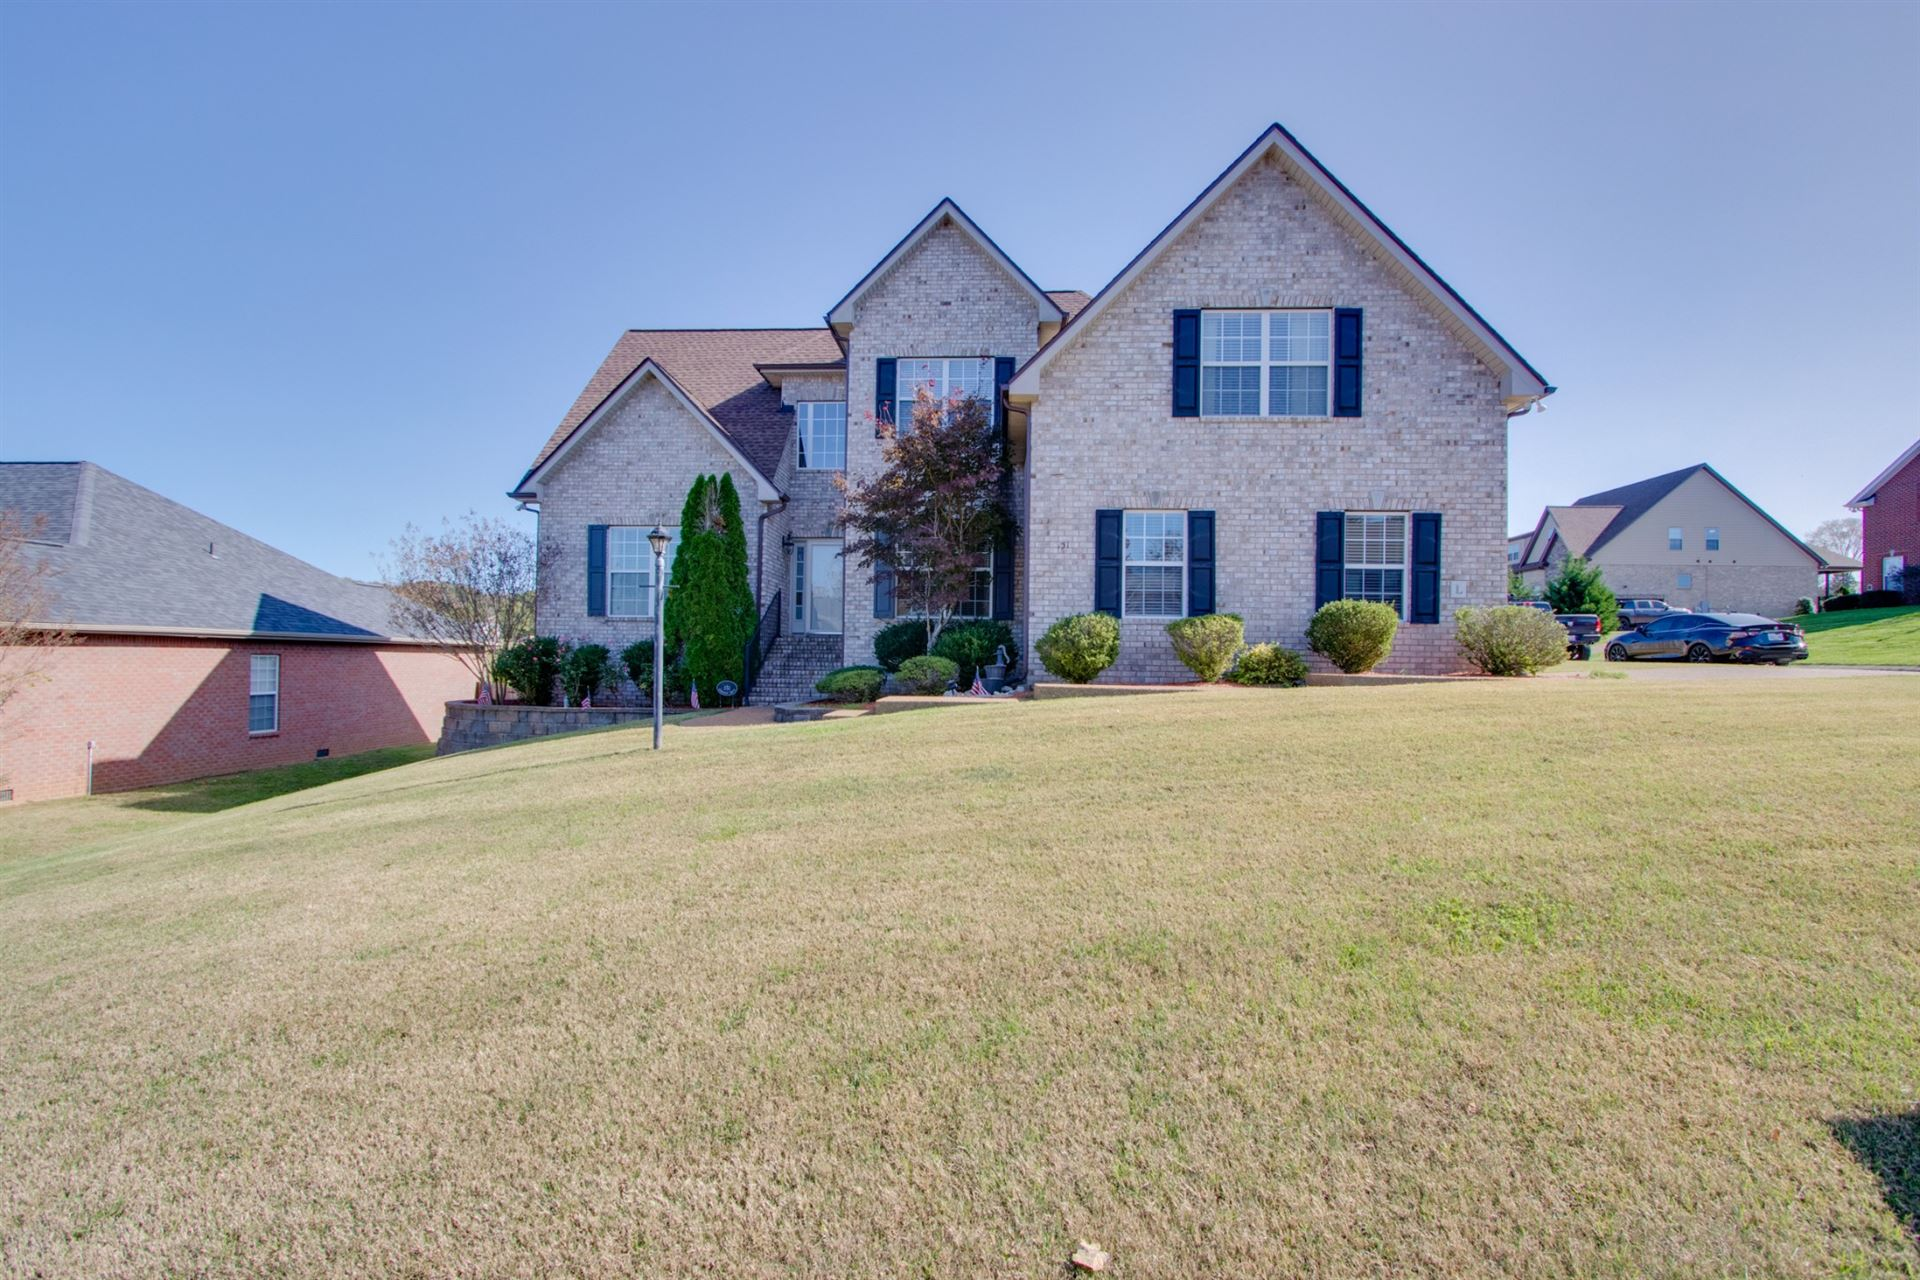 151 Normandy Dr, Mount Juliet, TN 37122 - MLS#: 2203295